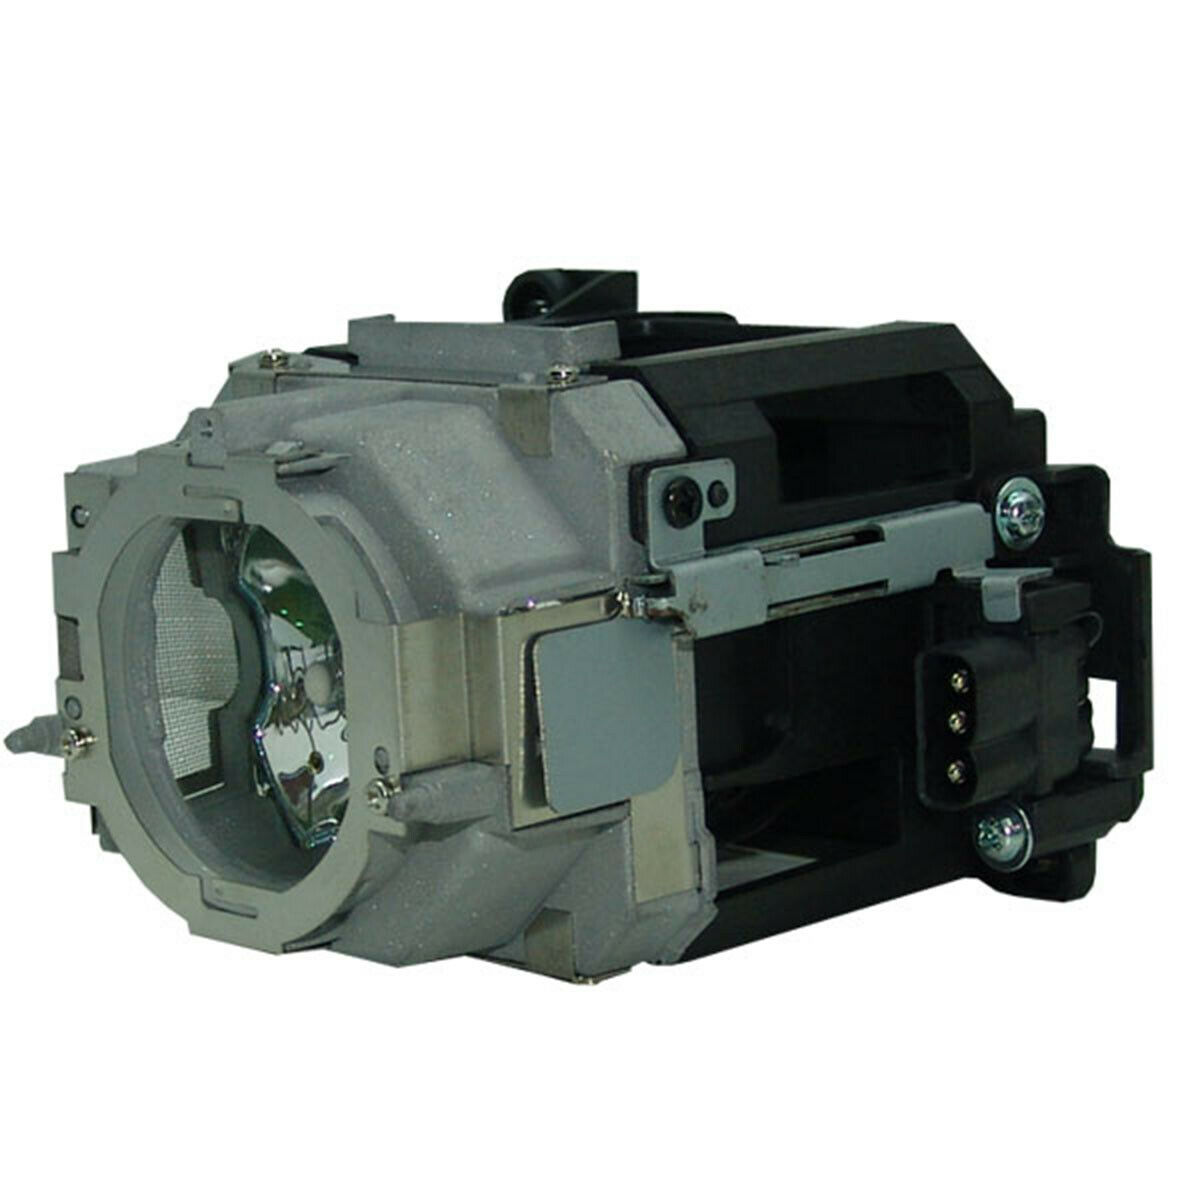 XG-C335X XG-C435X Projector Replacement Projector lamp AN-C430LP with housing for Sharp XG-C330X XG-C430X